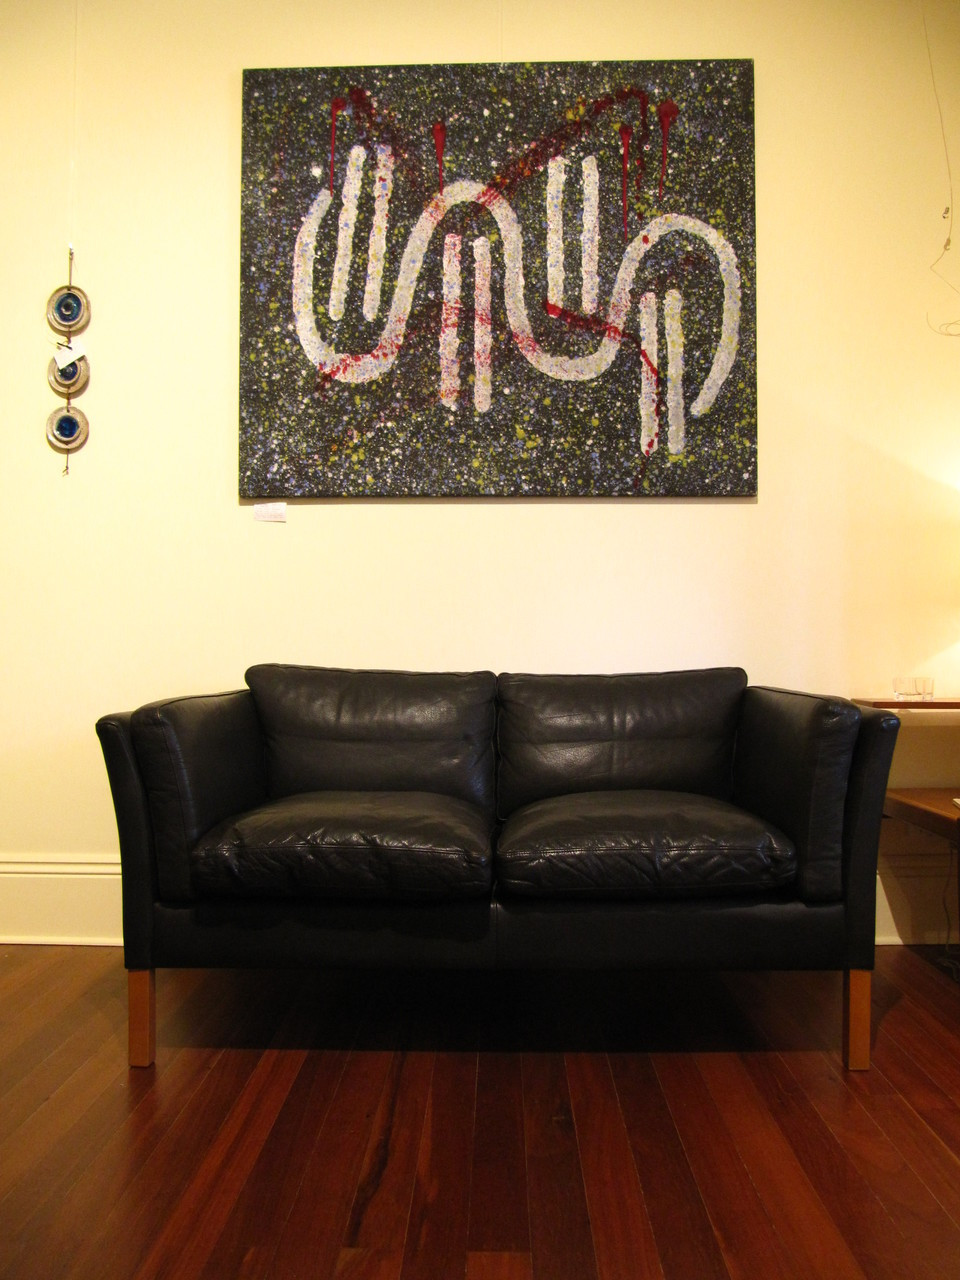 Vintage Danish Modern Stouby Black Leather two seater Sofa or Couch